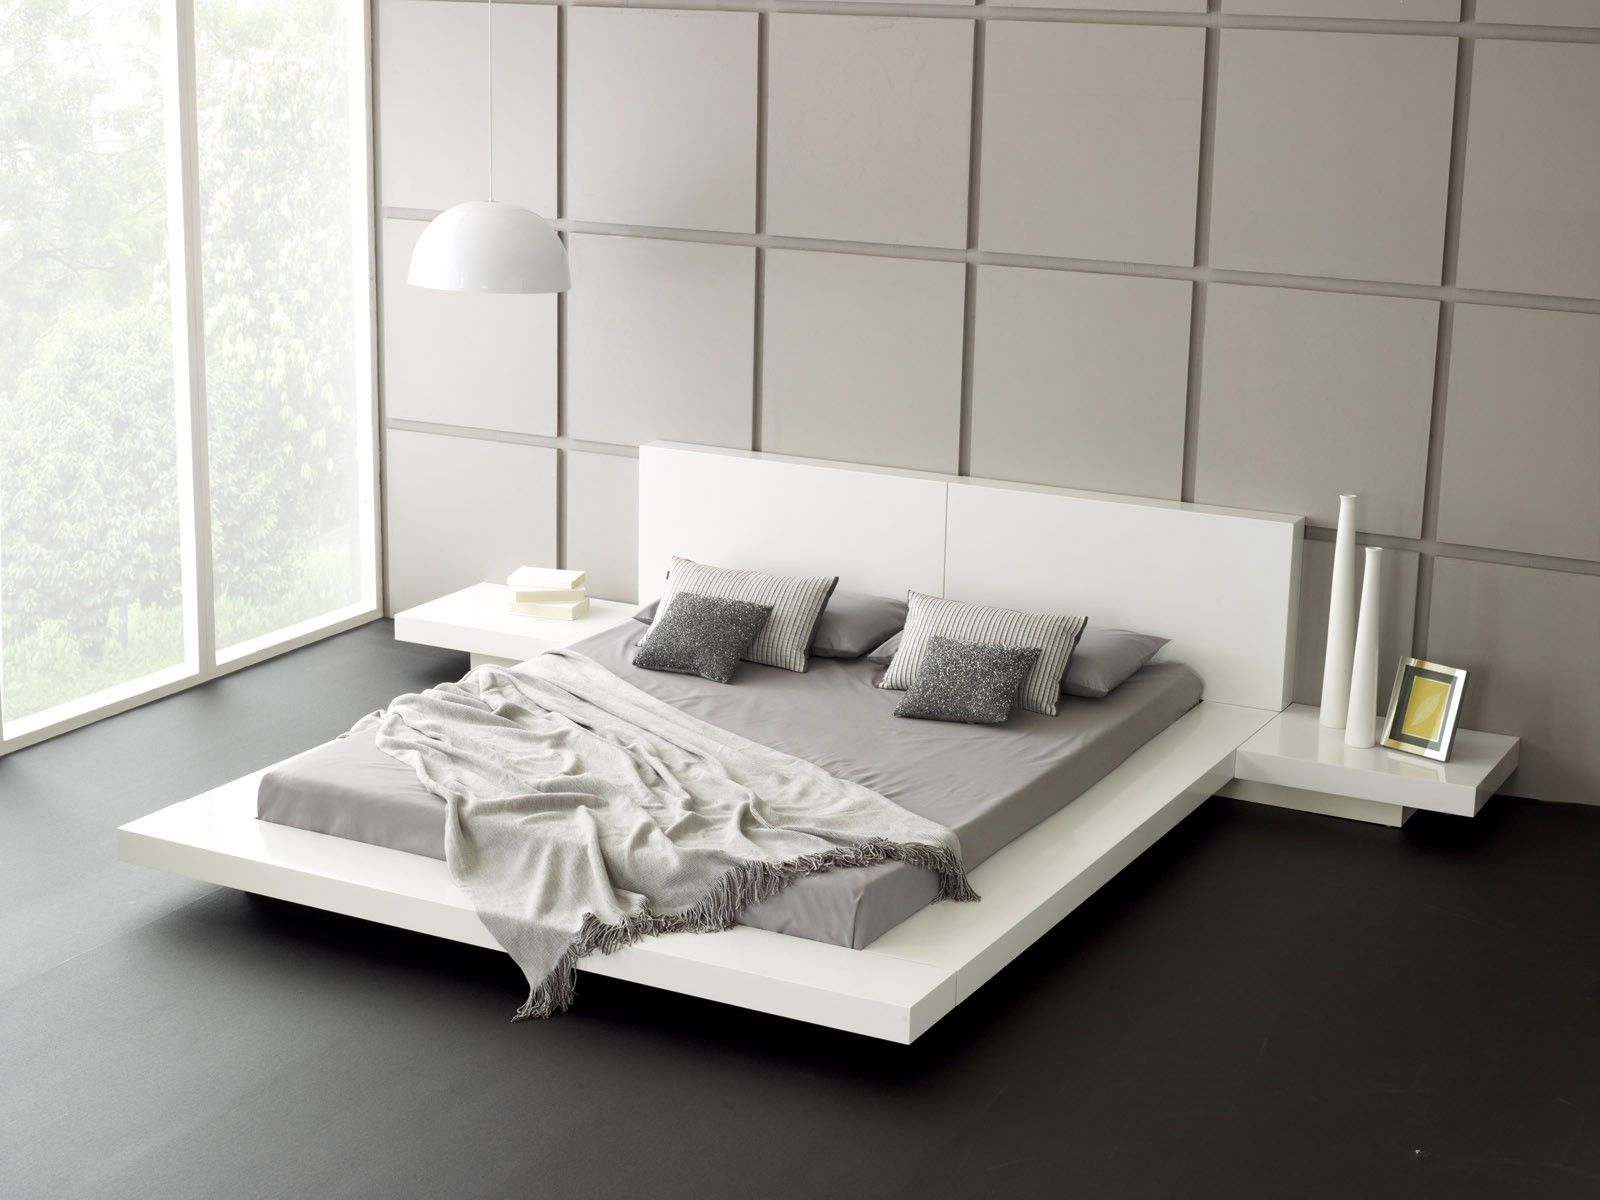 painting of various types of bed frames minimalist on innovative ideas for useful beds with storages how to declutter your bedroom id=45148